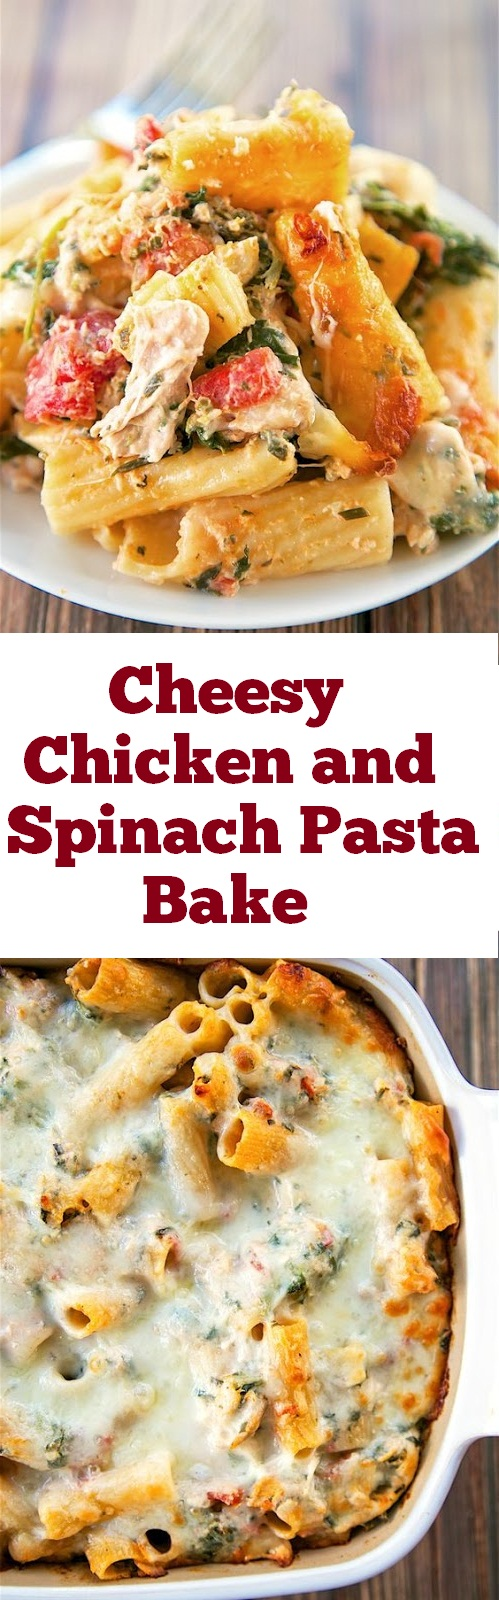 This Cheesy Chicken and Spinach Pasta Bake is creamy and simple to make with just a few ingredients and one pan for easy clean up. It's the perfect weeknight dinner! cheesy chicken and rice. #cheesy #chicken #cheesychicken #casserole #pasta #dinner #weeknight #maindish #easydinner #quickandeasy